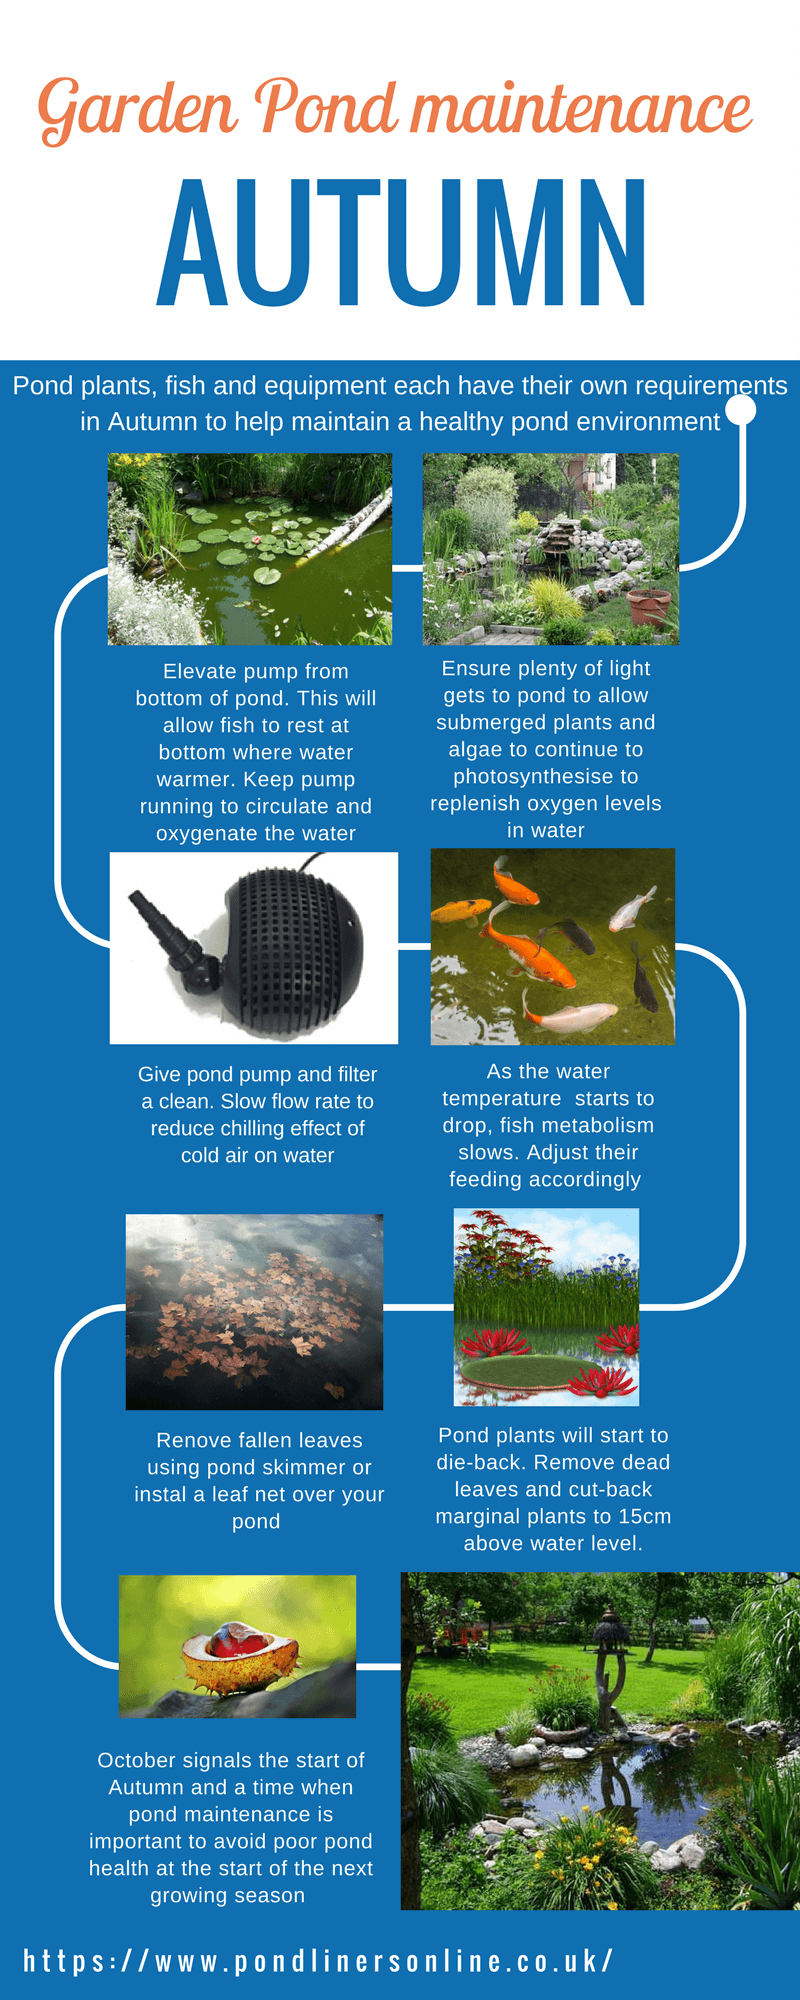 Autumn garden pond maintenance tips on this infographic